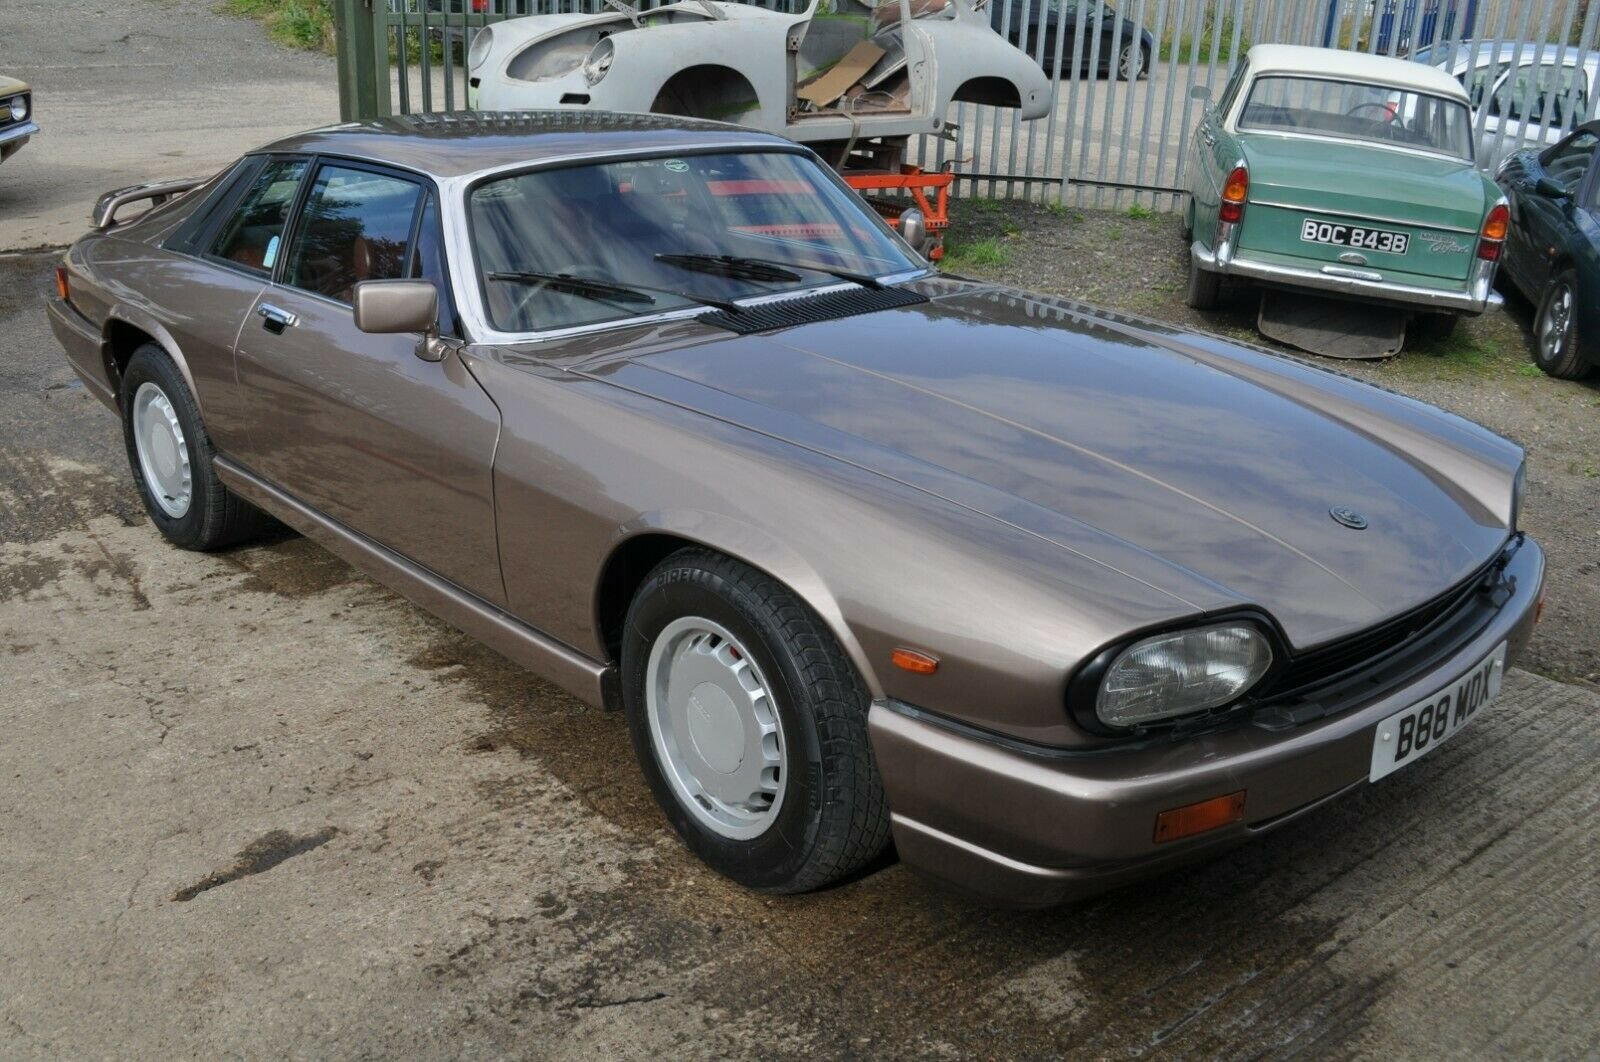 1984 JAGUAR XJS V12 5.3 HE VERY RARE GOOD CONDITION WITH MOT TWR For Sale (picture 1 of 6)